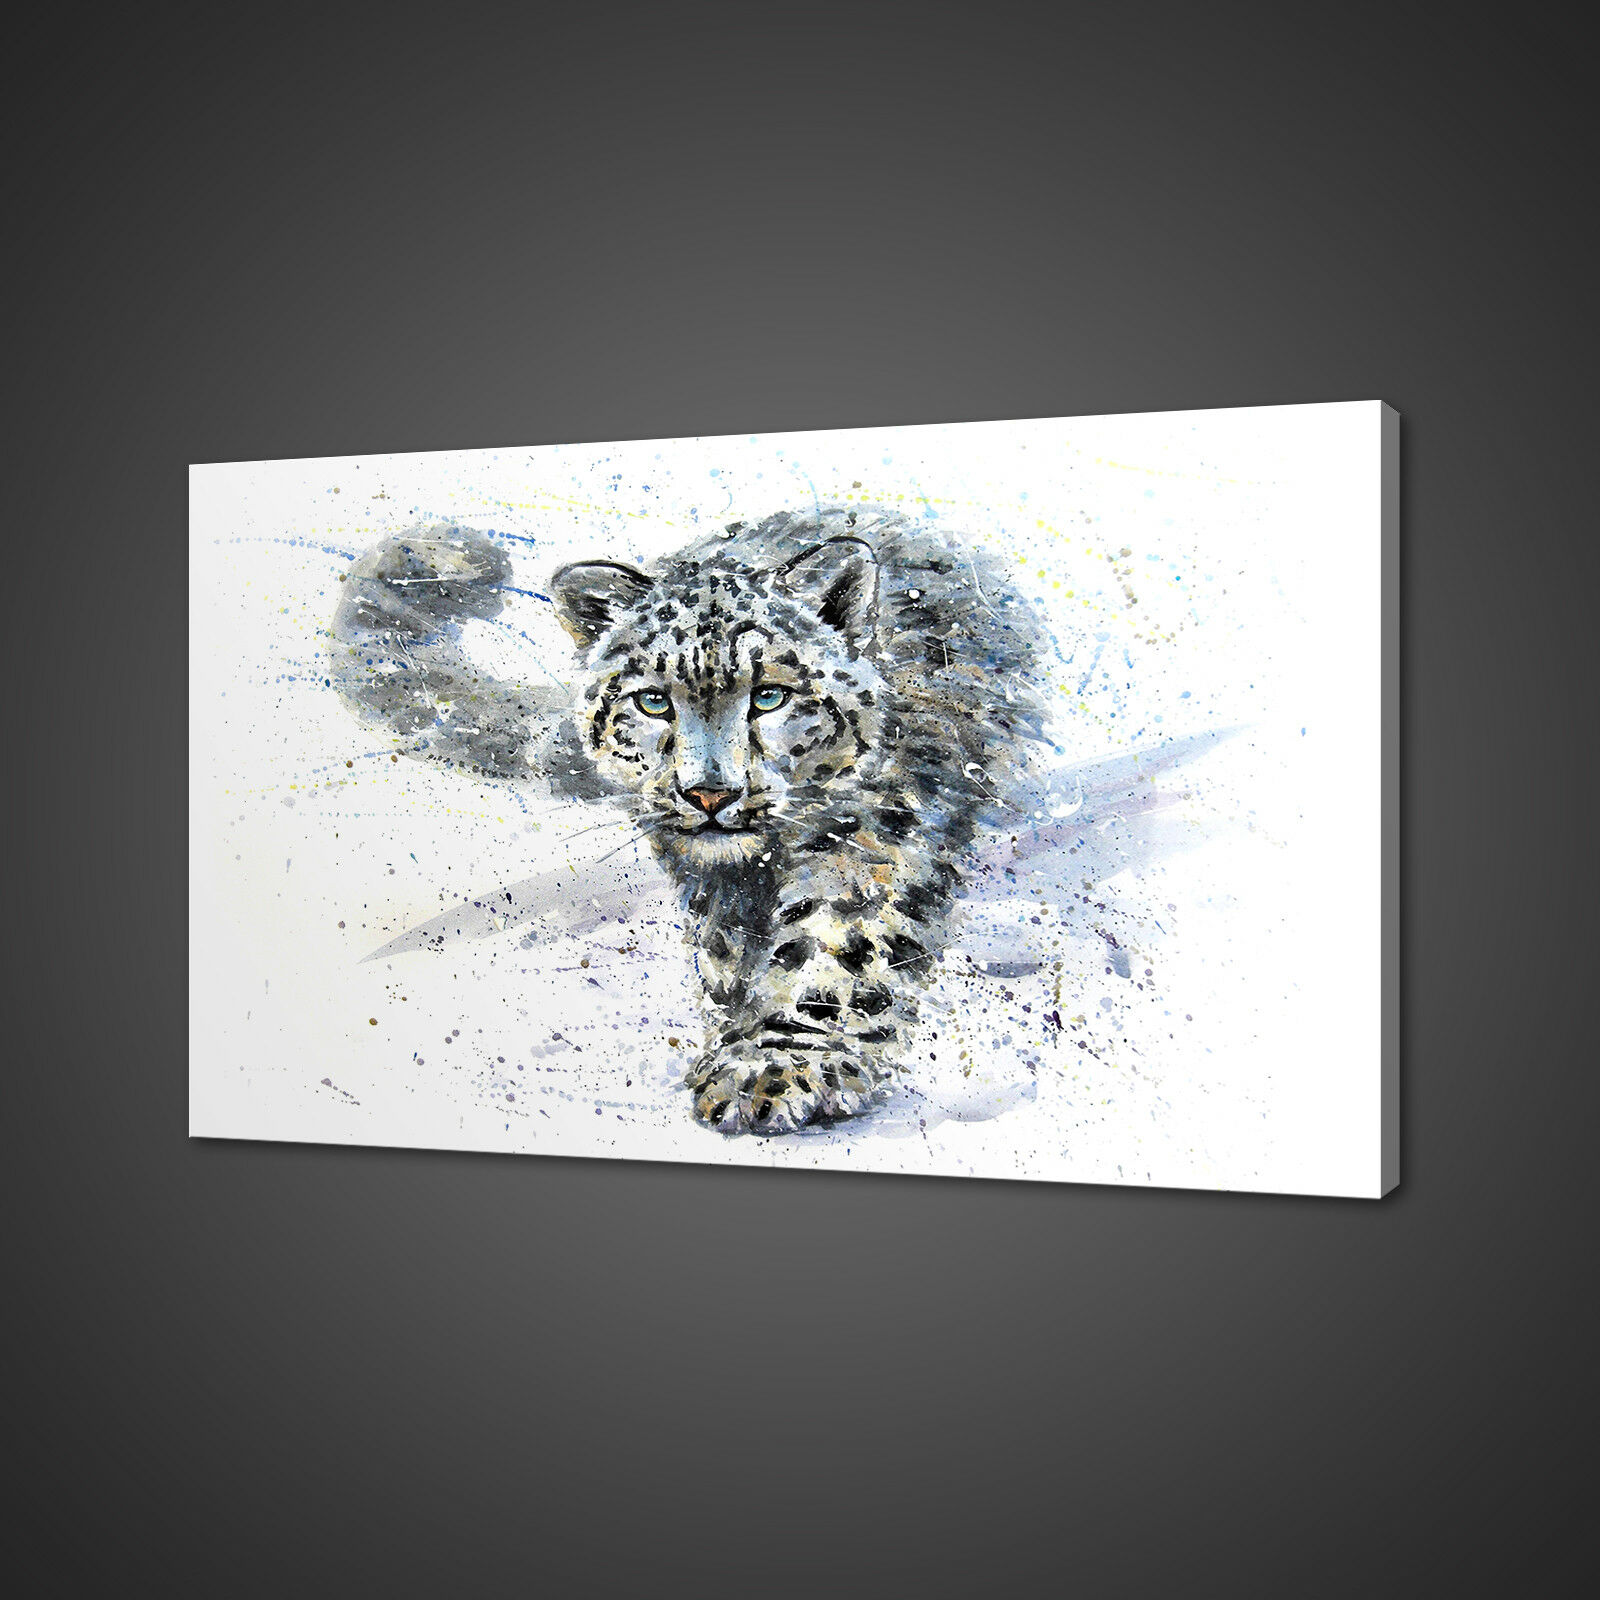 SNOW LEOPARD ABSTRACT PICTURE PRINT WALL ART HOME DECOR FREE FAST DELIVERY